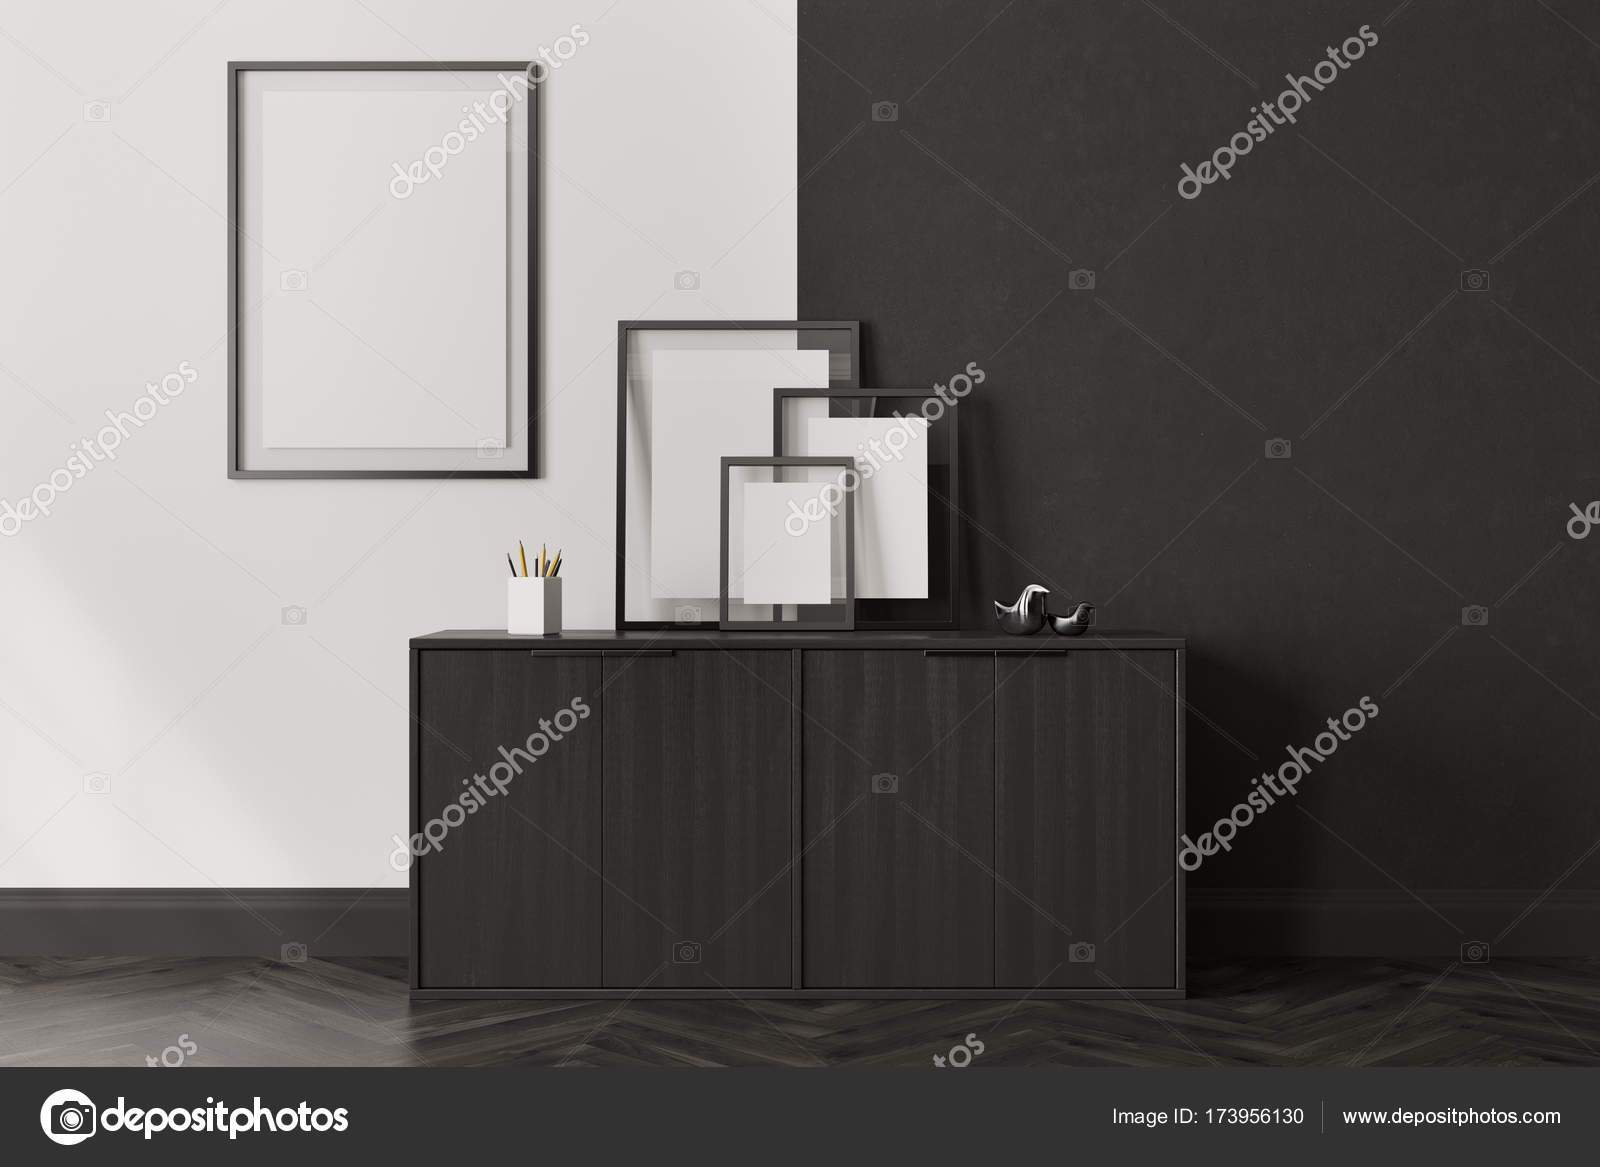 depositphotos stock photo black chest of drawers and